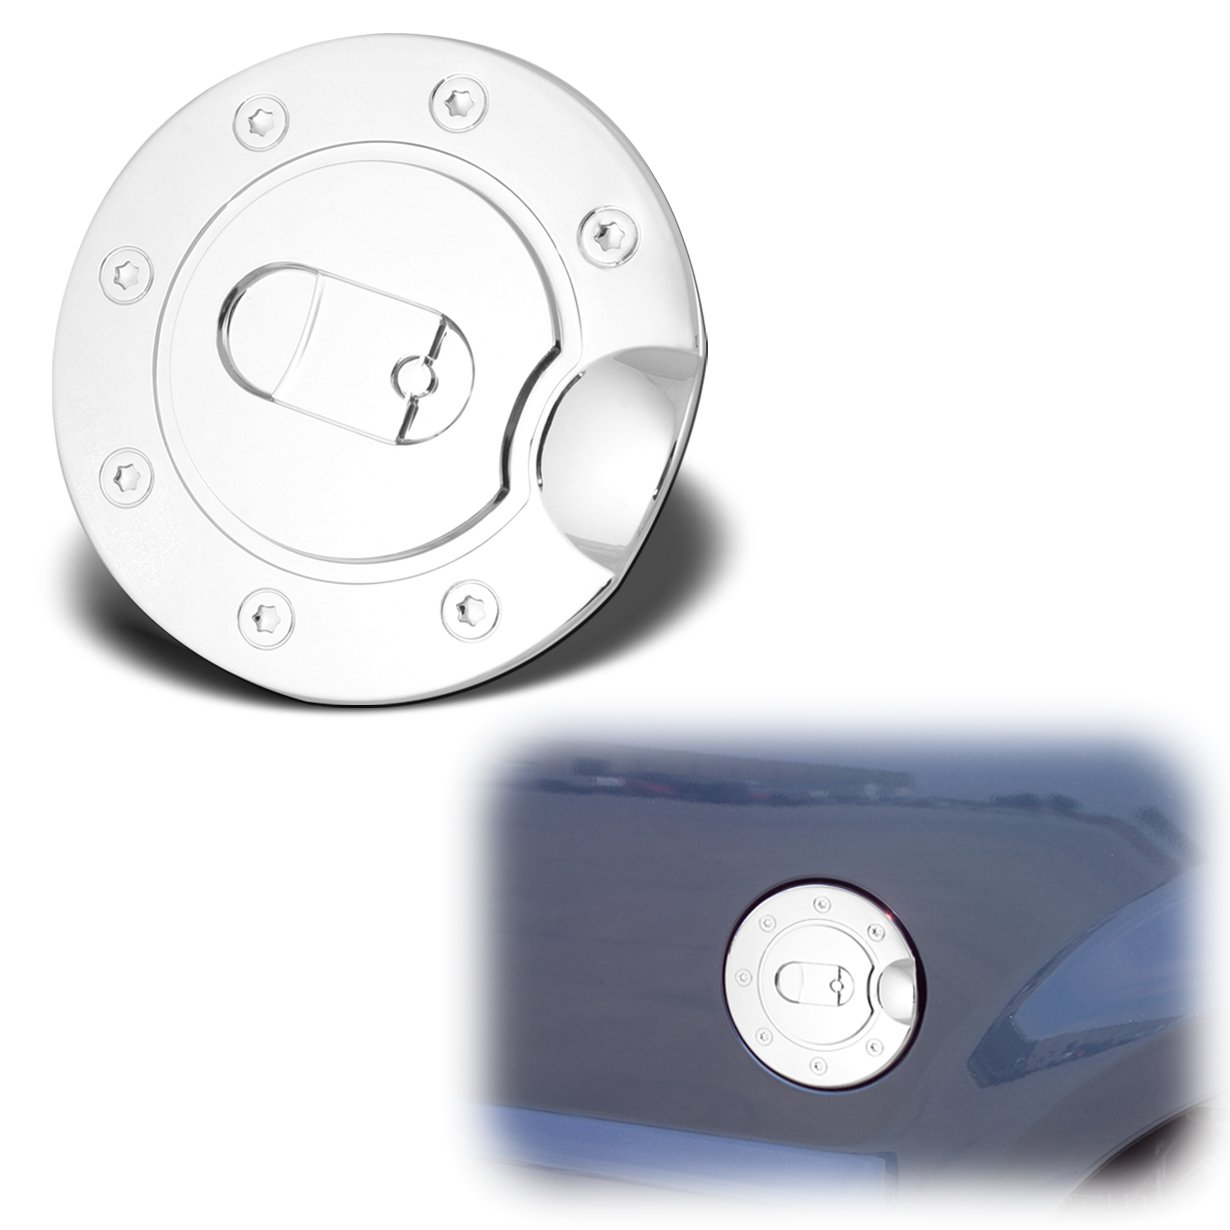 AutoModZone Chrome ABS Fuel Tank Gas Door Cap Cover for 97-03 Ford F-150// 97-10 F-250 F-350 SuperDuty// 97-14 Expedition// 02-10 Explorer// 00-05 Excursion 03-05 Lincoln Aviator 98-14 Lincoln Navigator